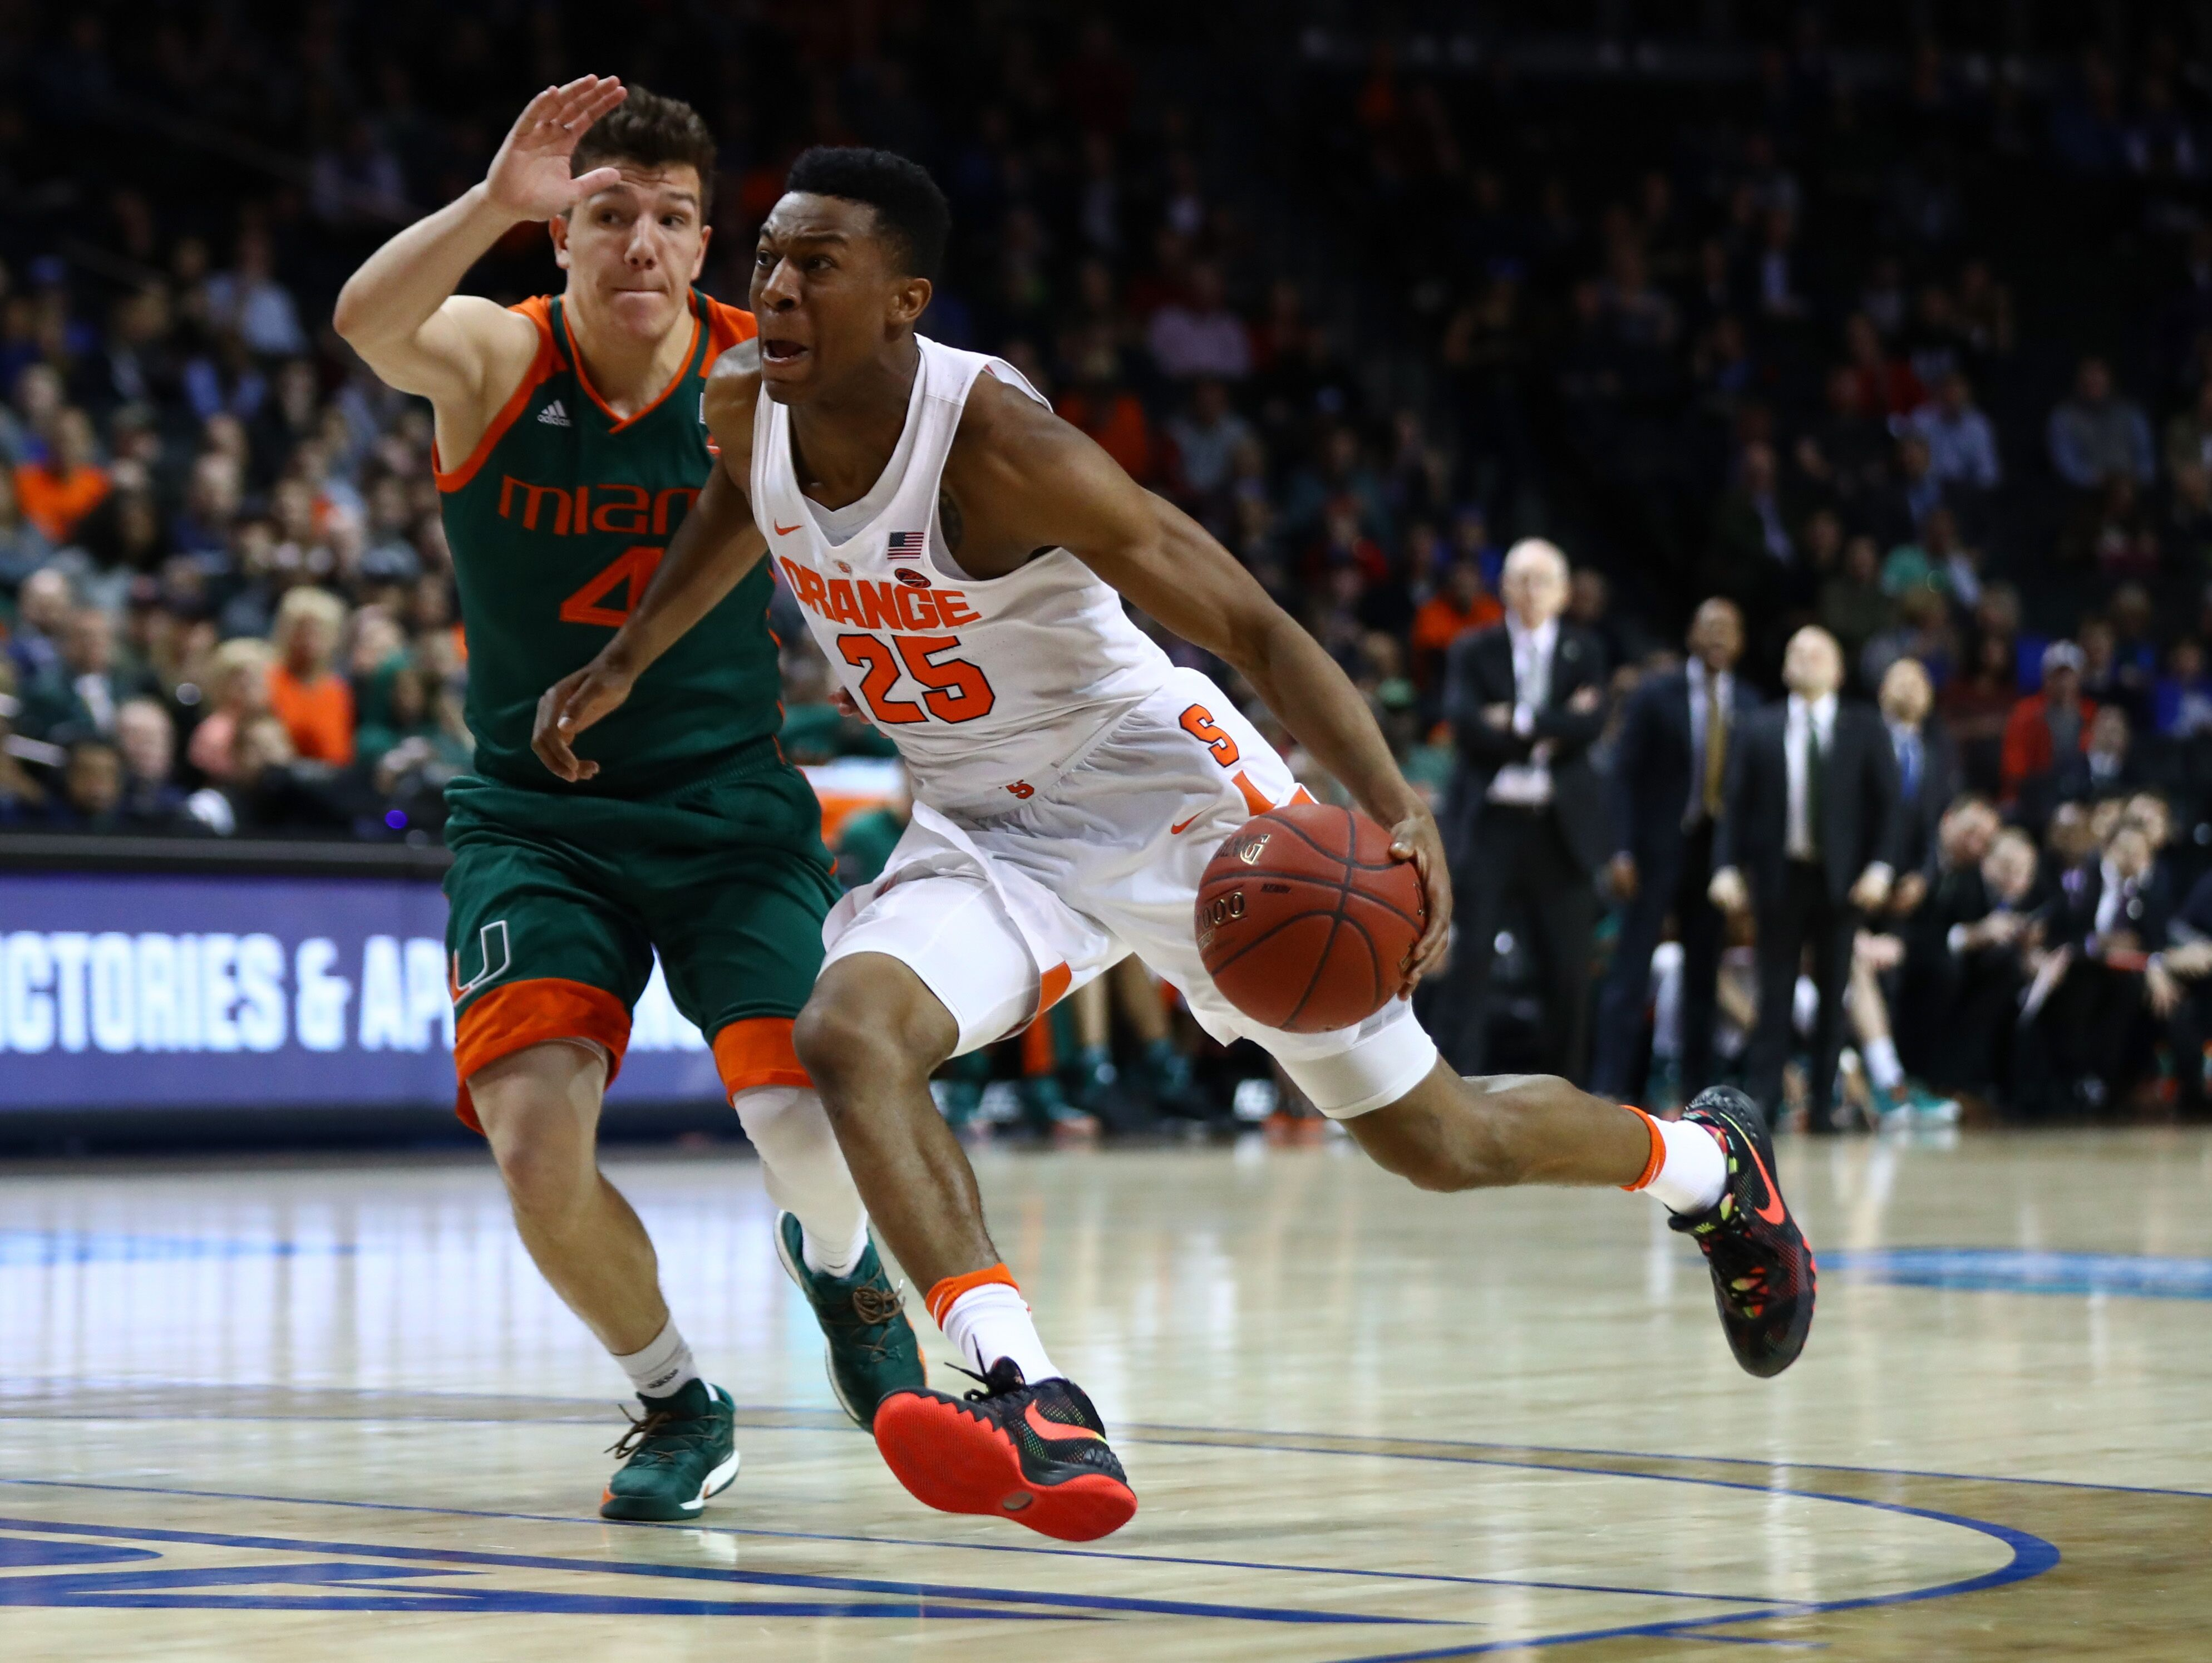 Syracuse Basketball Tyus Battle S Clutch Play Leads To Critical Win